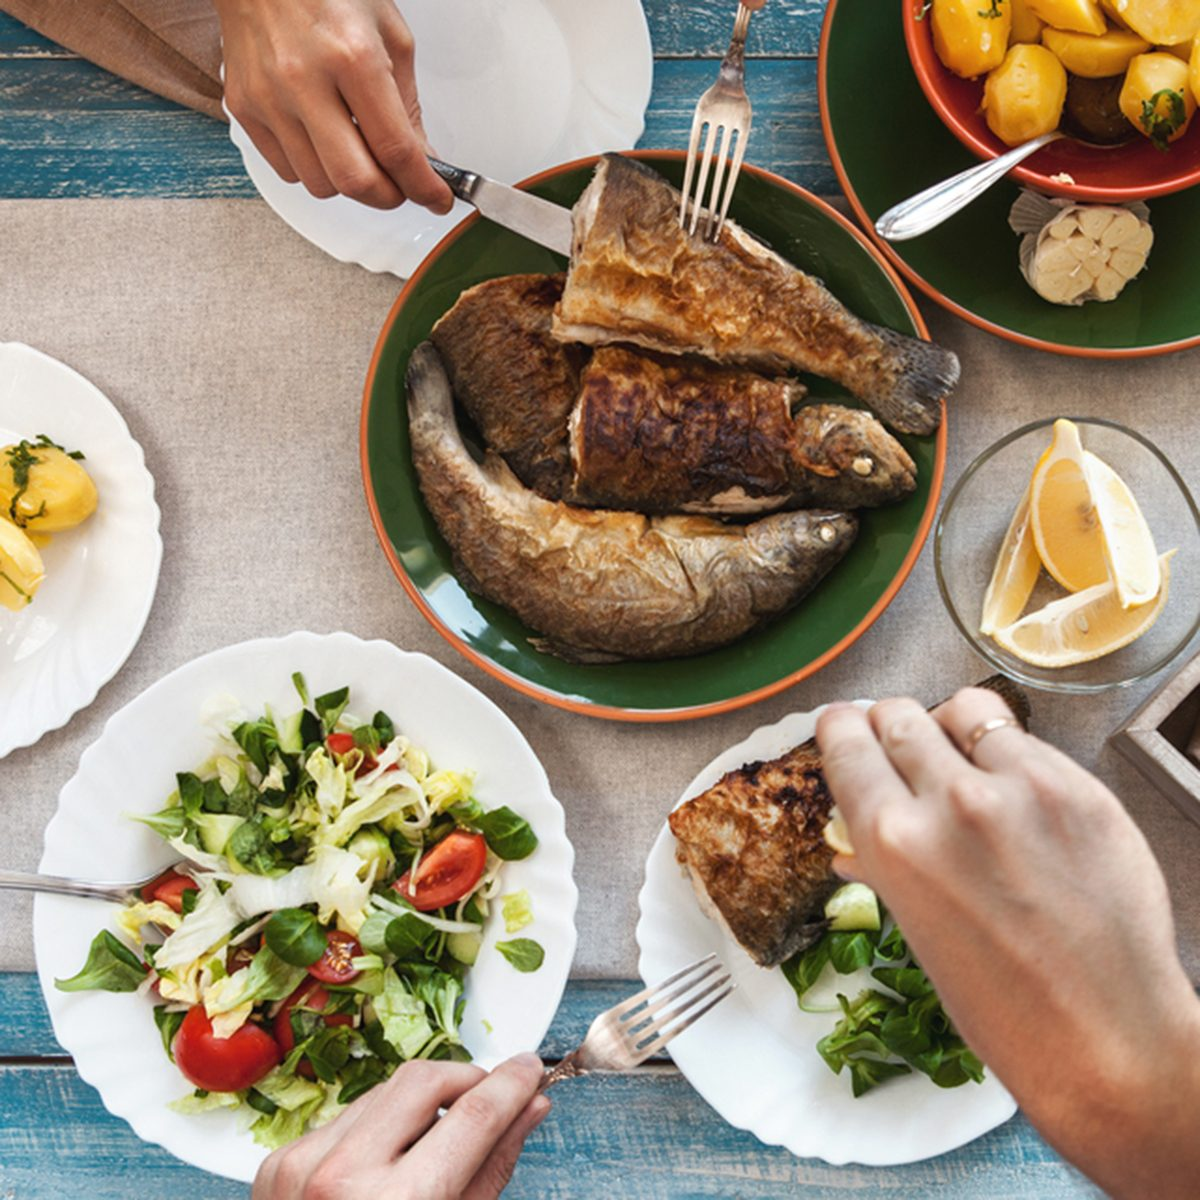 Dinner with fried fish, potatoes and fresh salad; Shutterstock ID 400166998